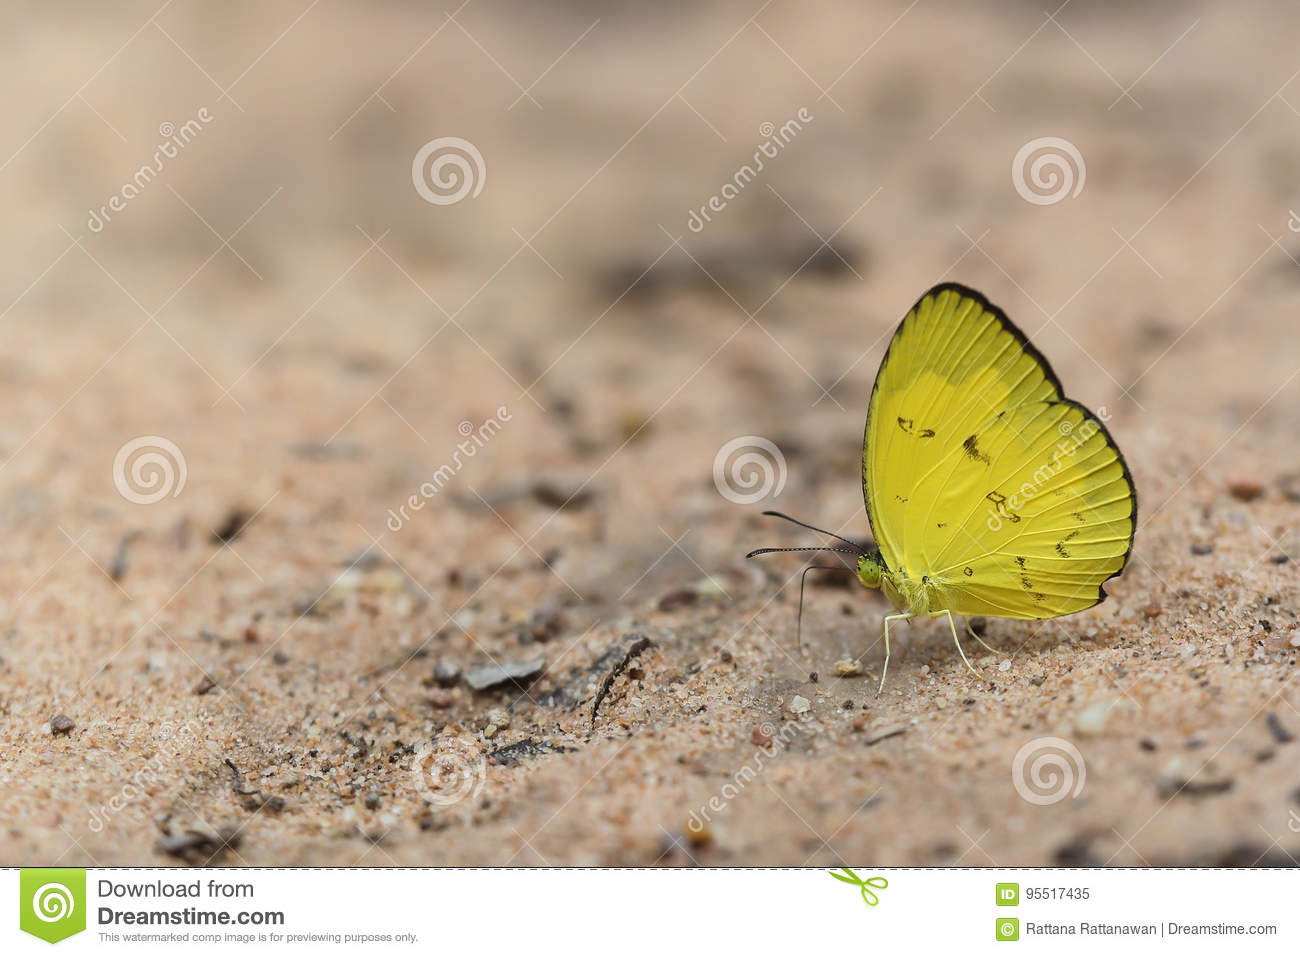 Eurema smilax, small grass yellow butterfly on brown soil